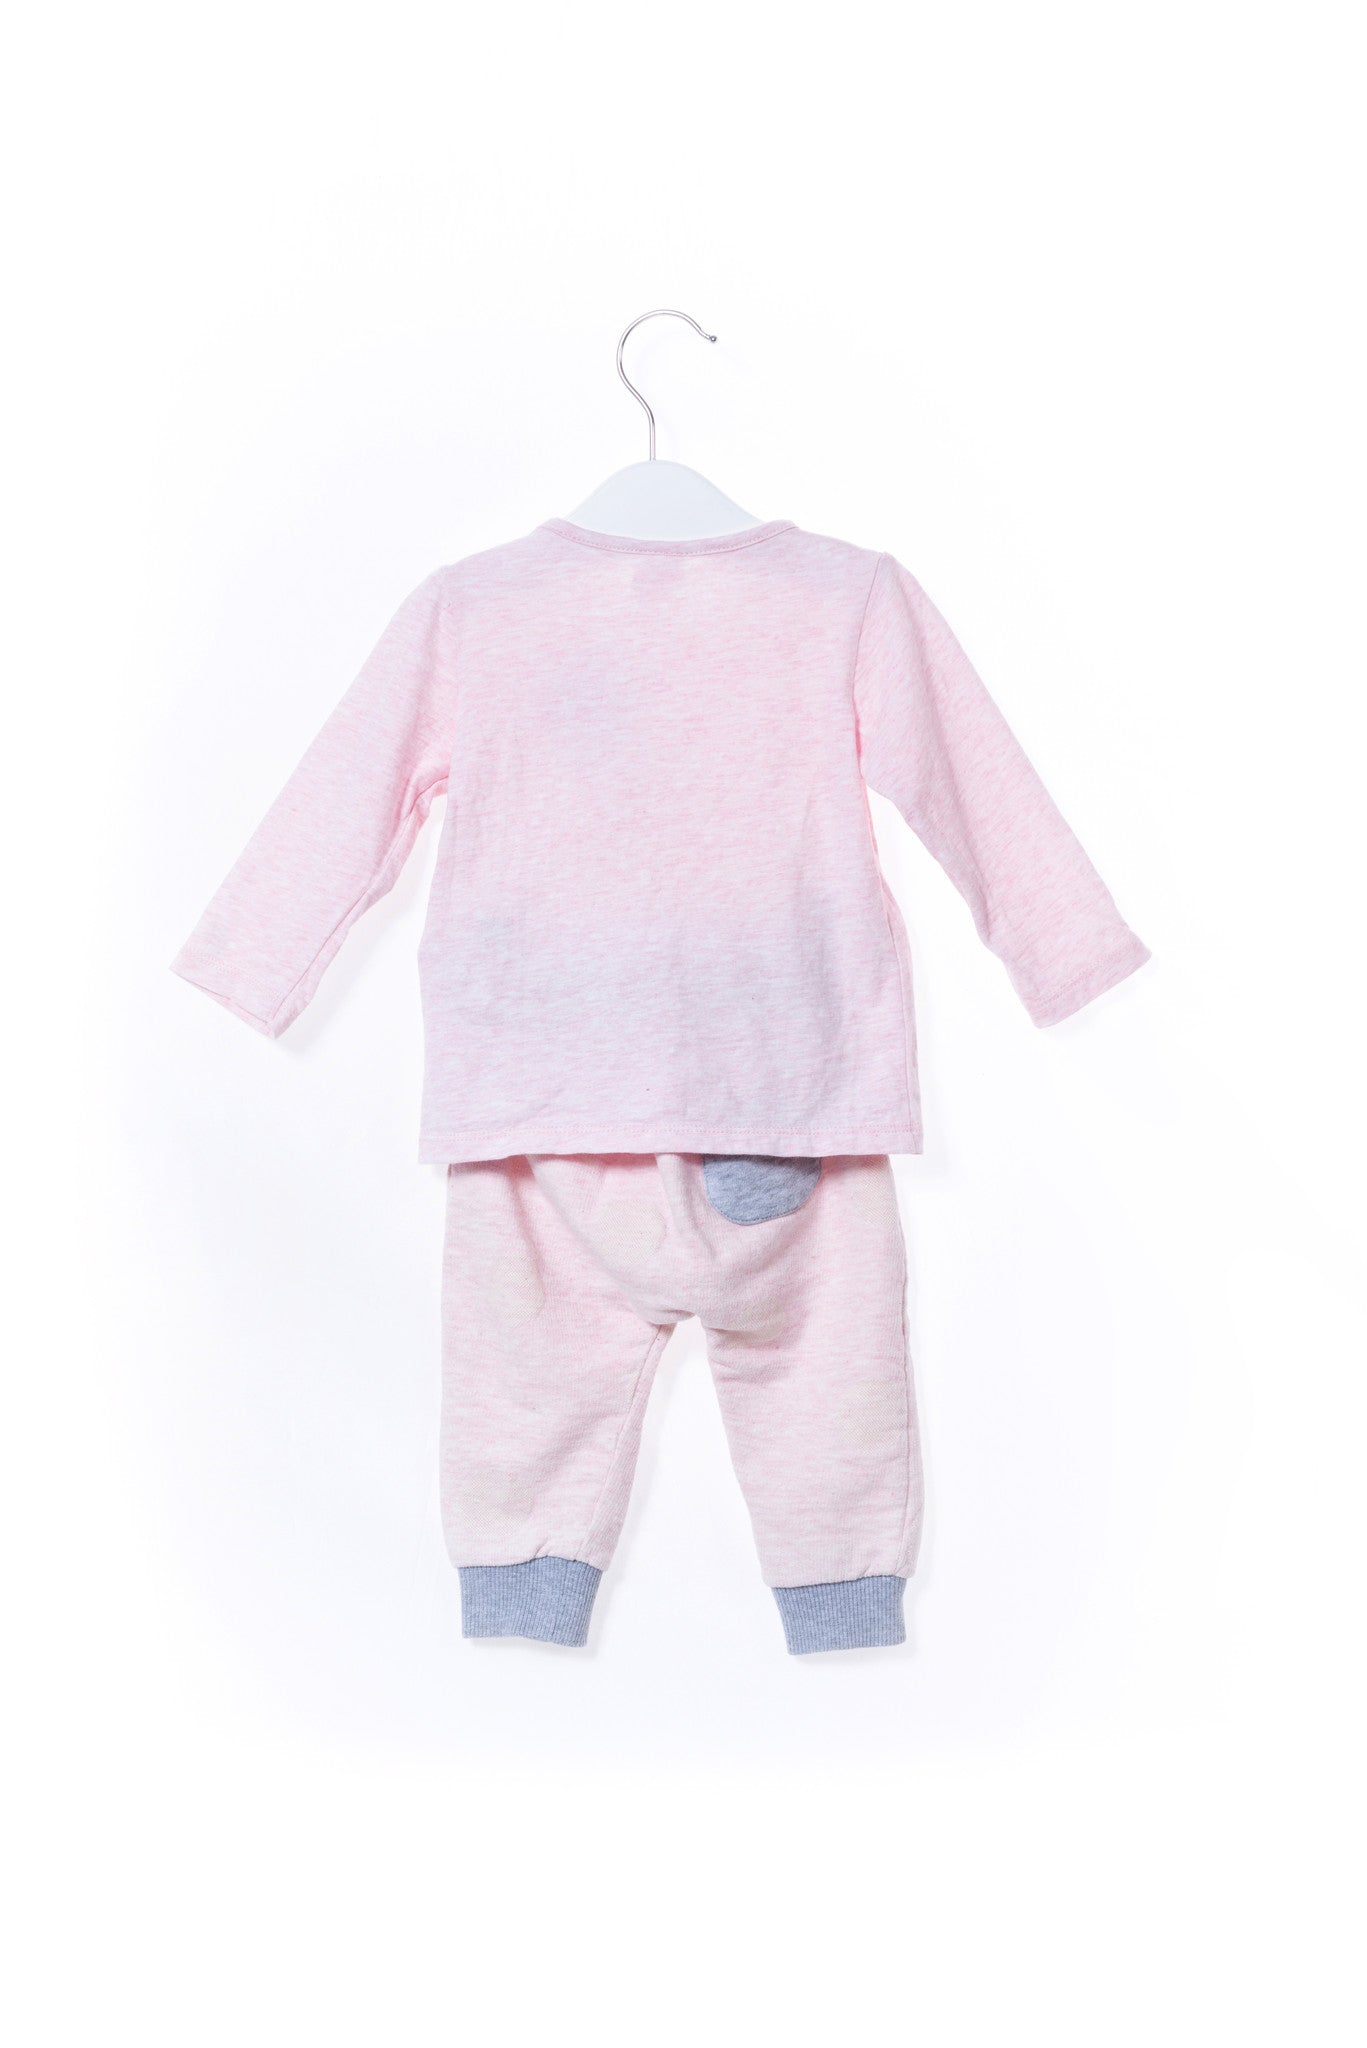 10001024 Seed Baby~Top and Pants 3-6M at Retykle